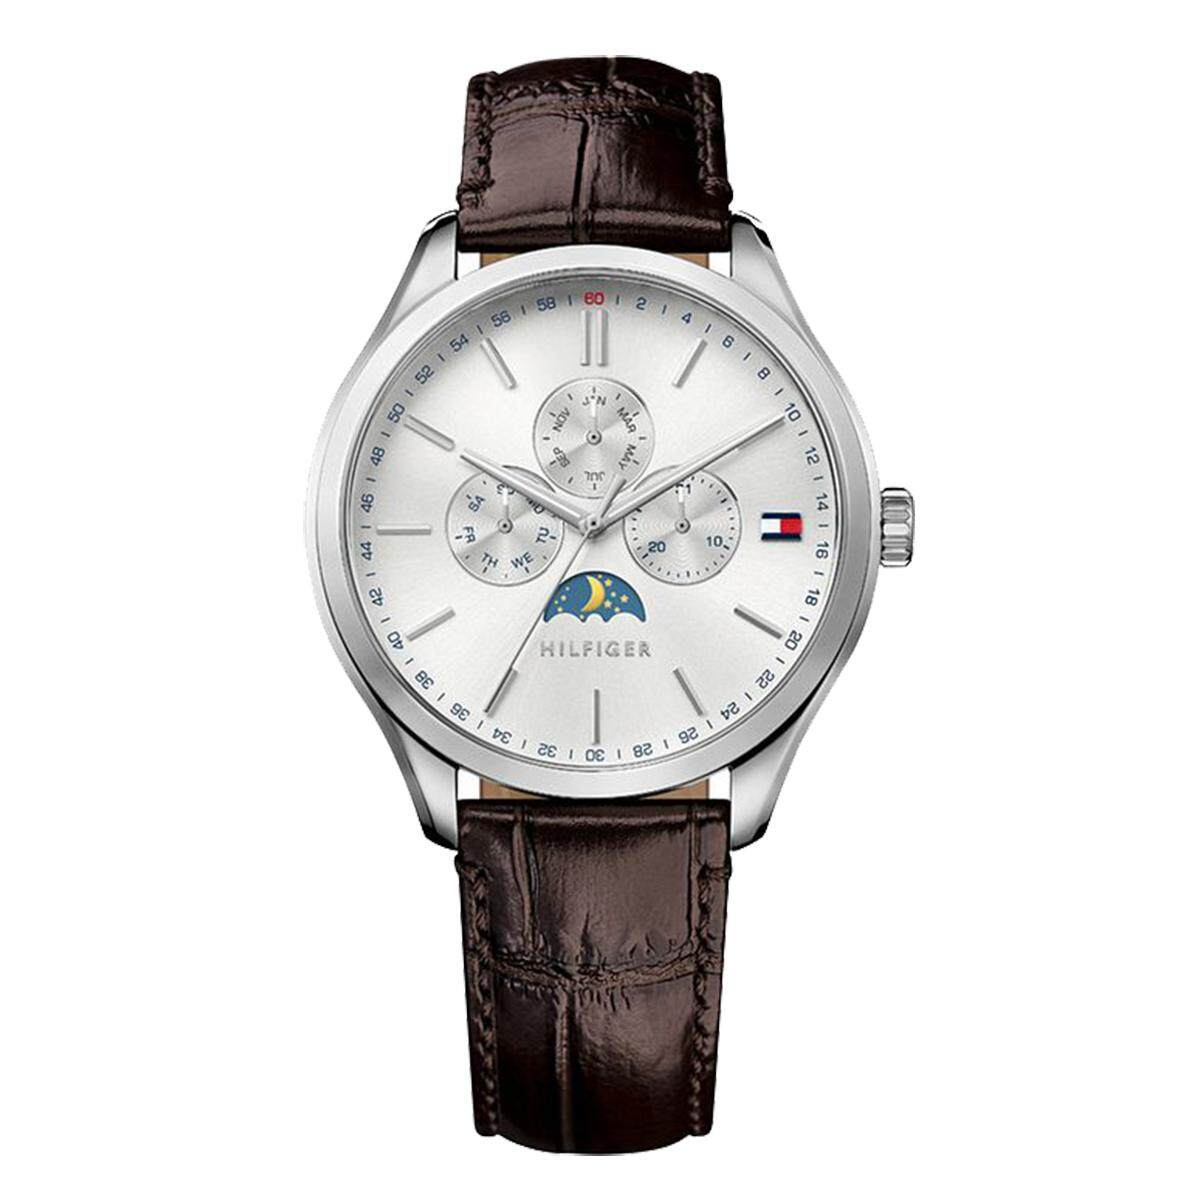 Tommy Hilfiger Watch Oliver Moon Phase Brown Stainless-Steel Case Leather Strap Mens NWT + Warranty 1791304